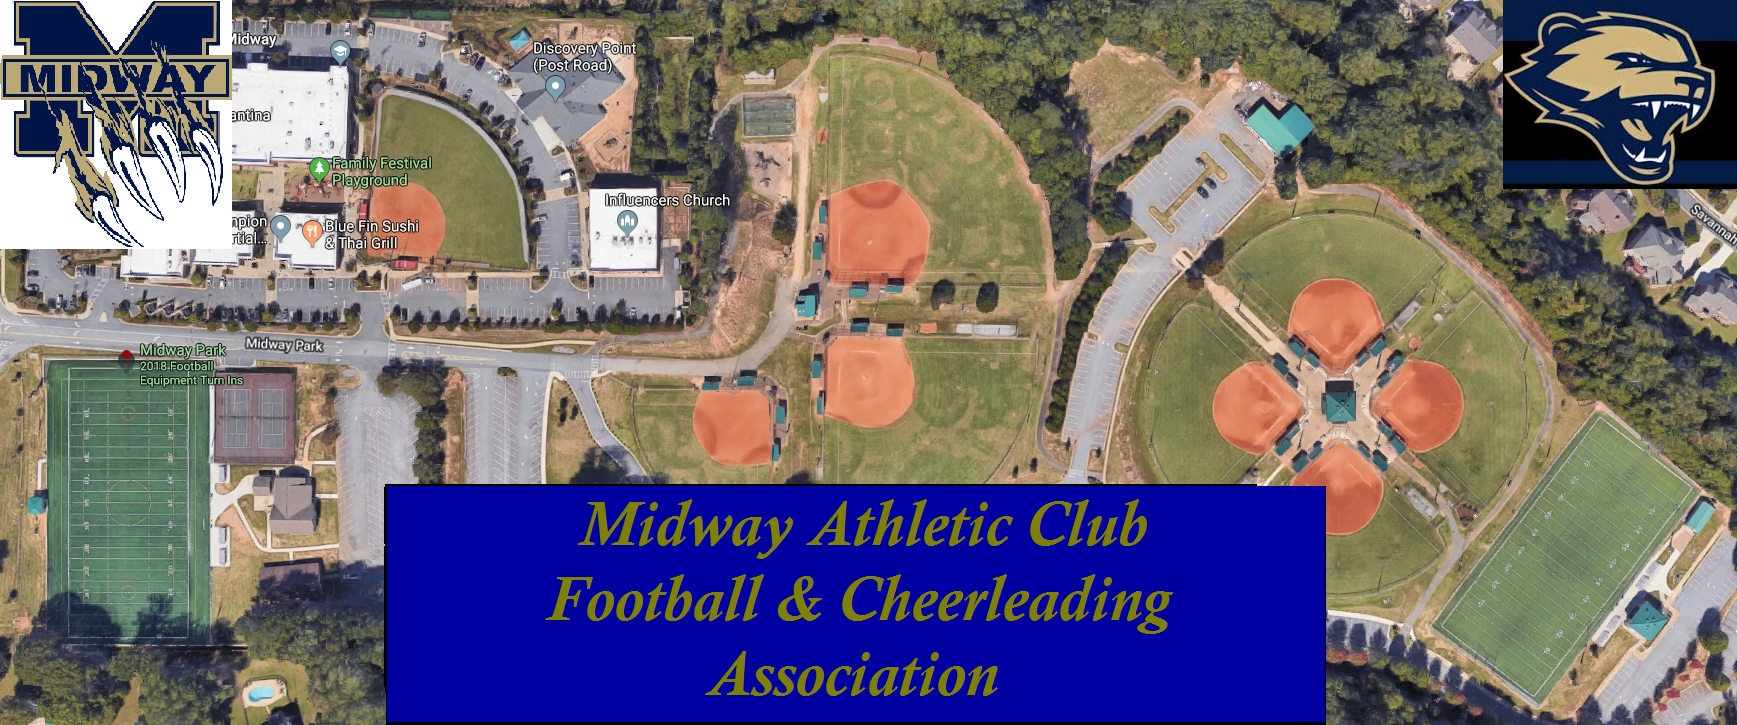 Midway Wolverines Football & Cheerleading Association, Football, Goal, Field